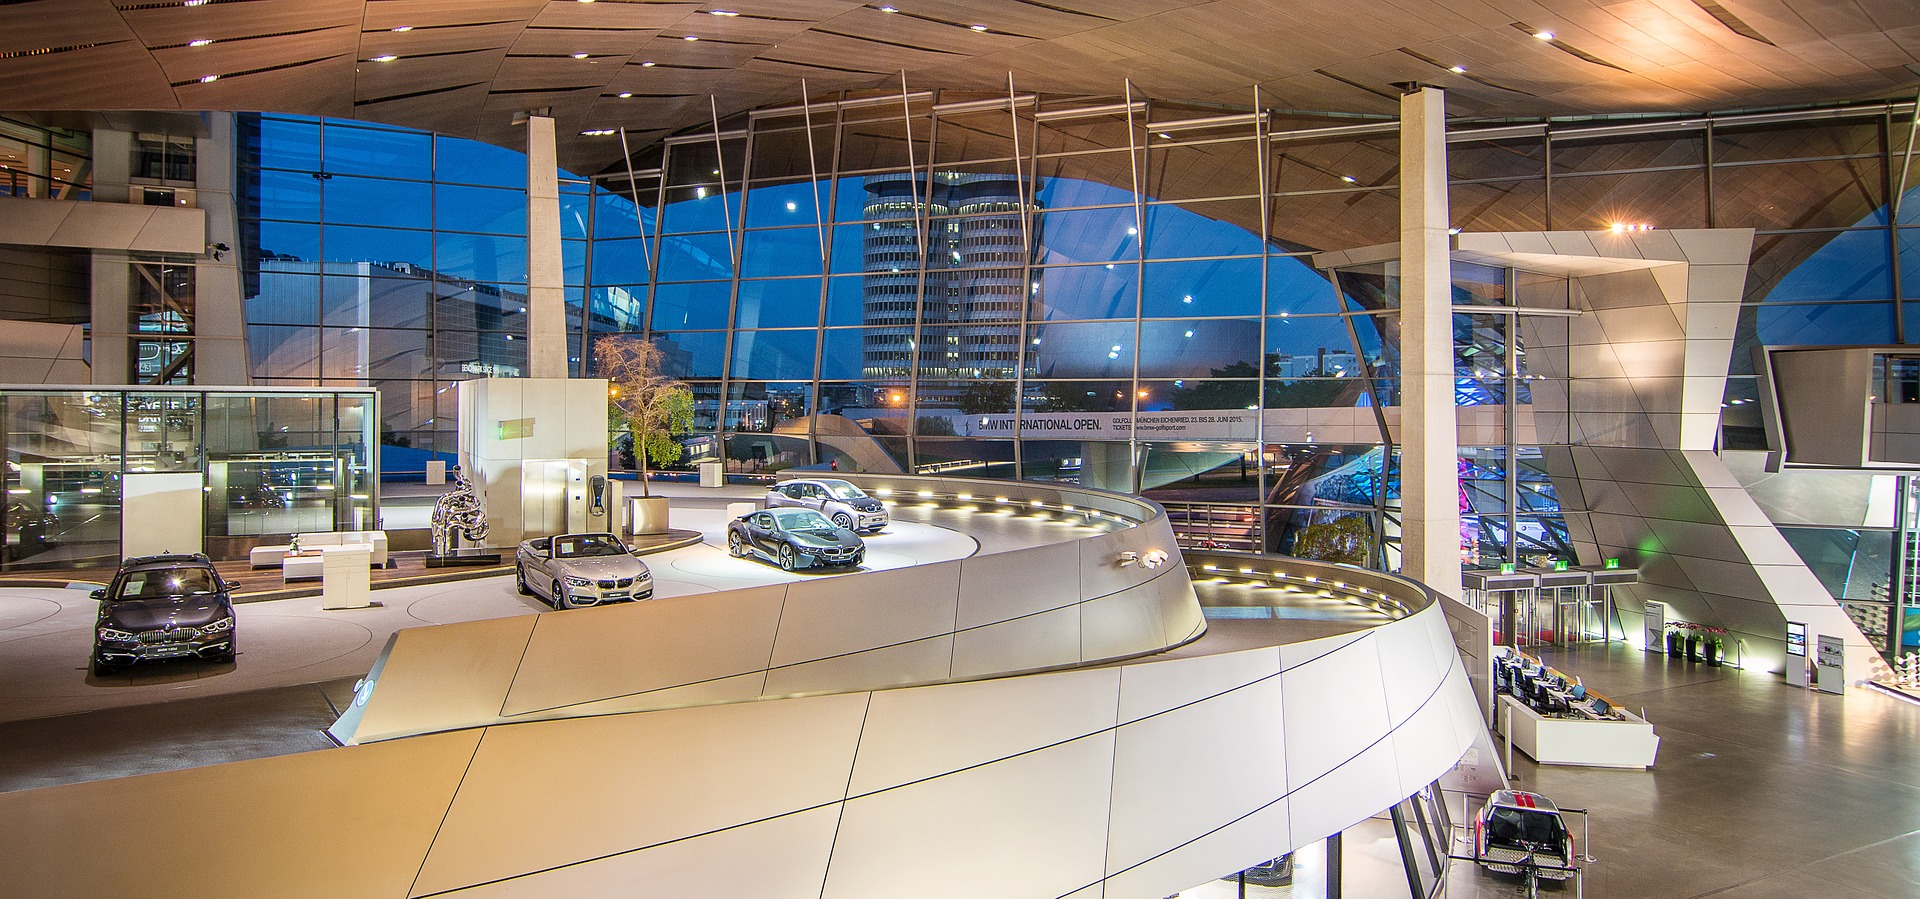 Landscape shot of BMW's museum showroom in Munich, Germany.